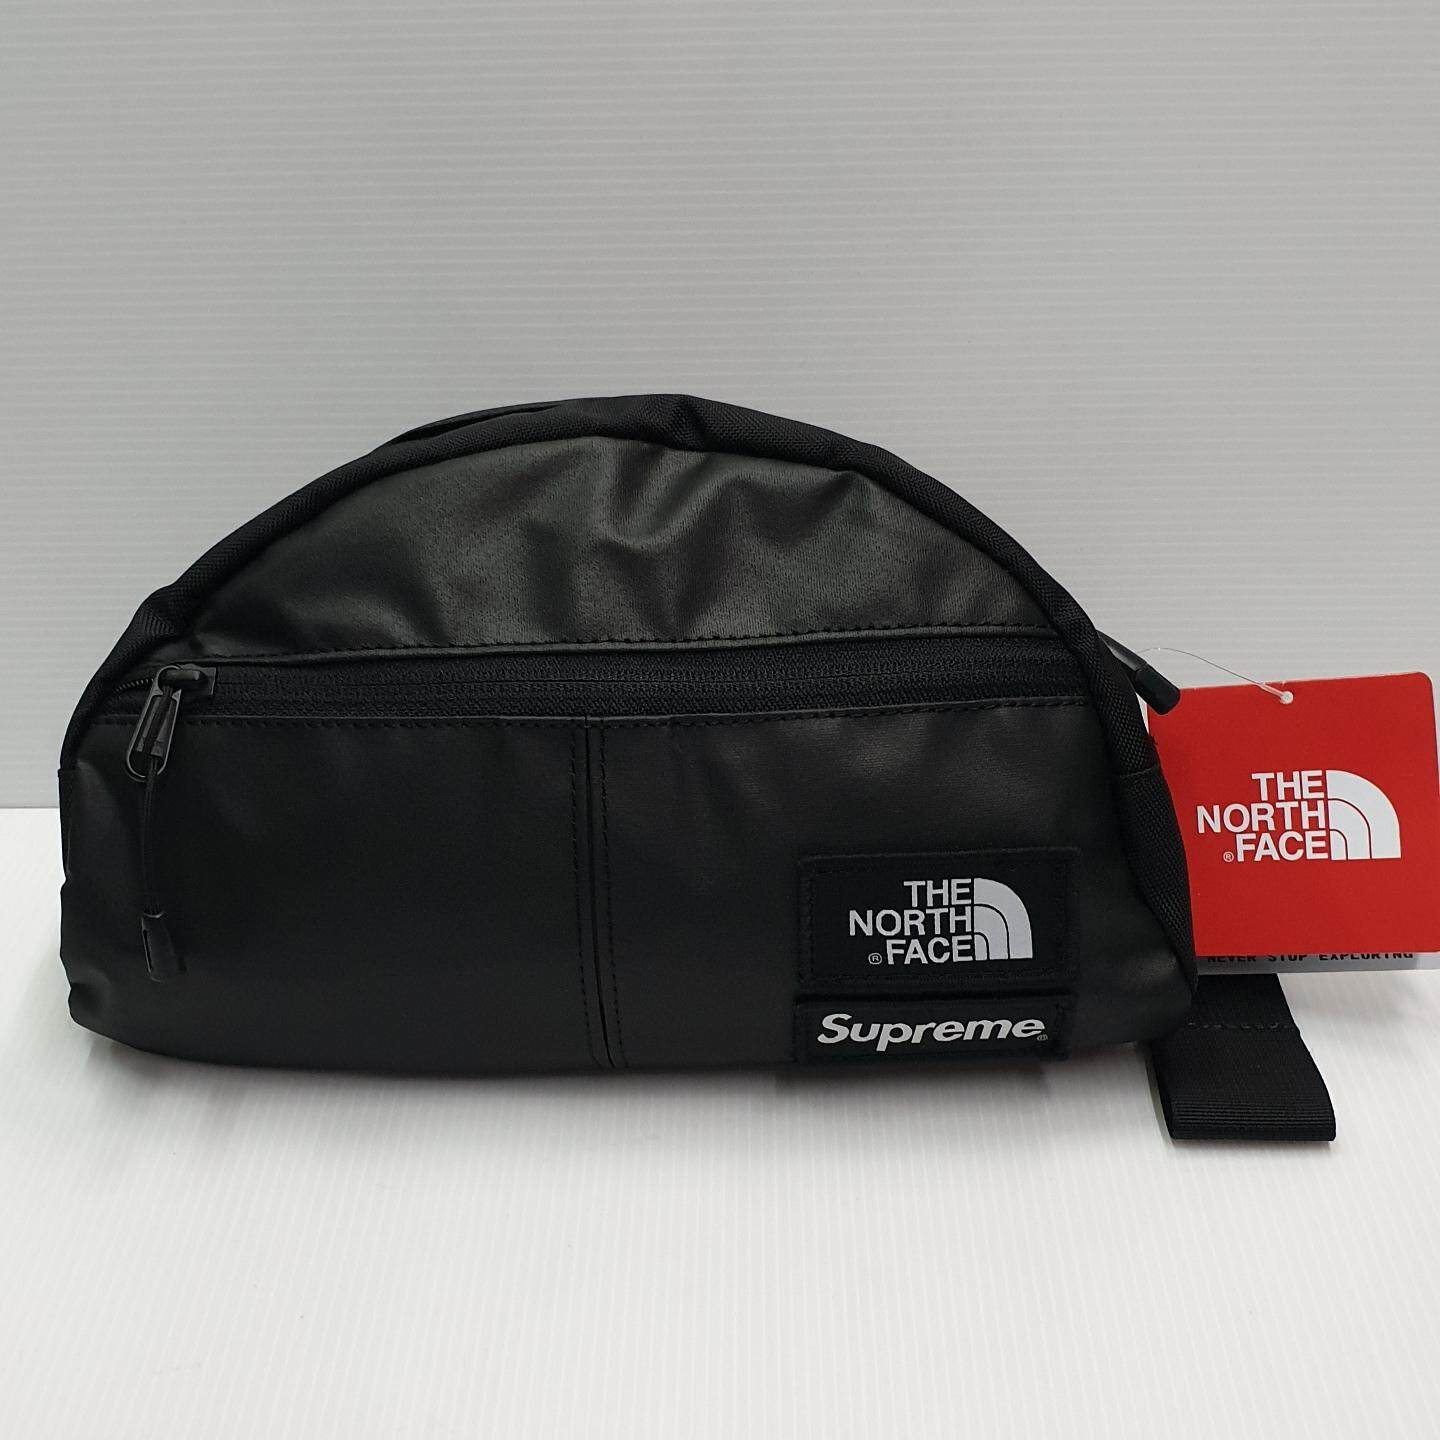 02bc8a614 The North Face Waist Packs price in Malaysia - Best The North Face ...